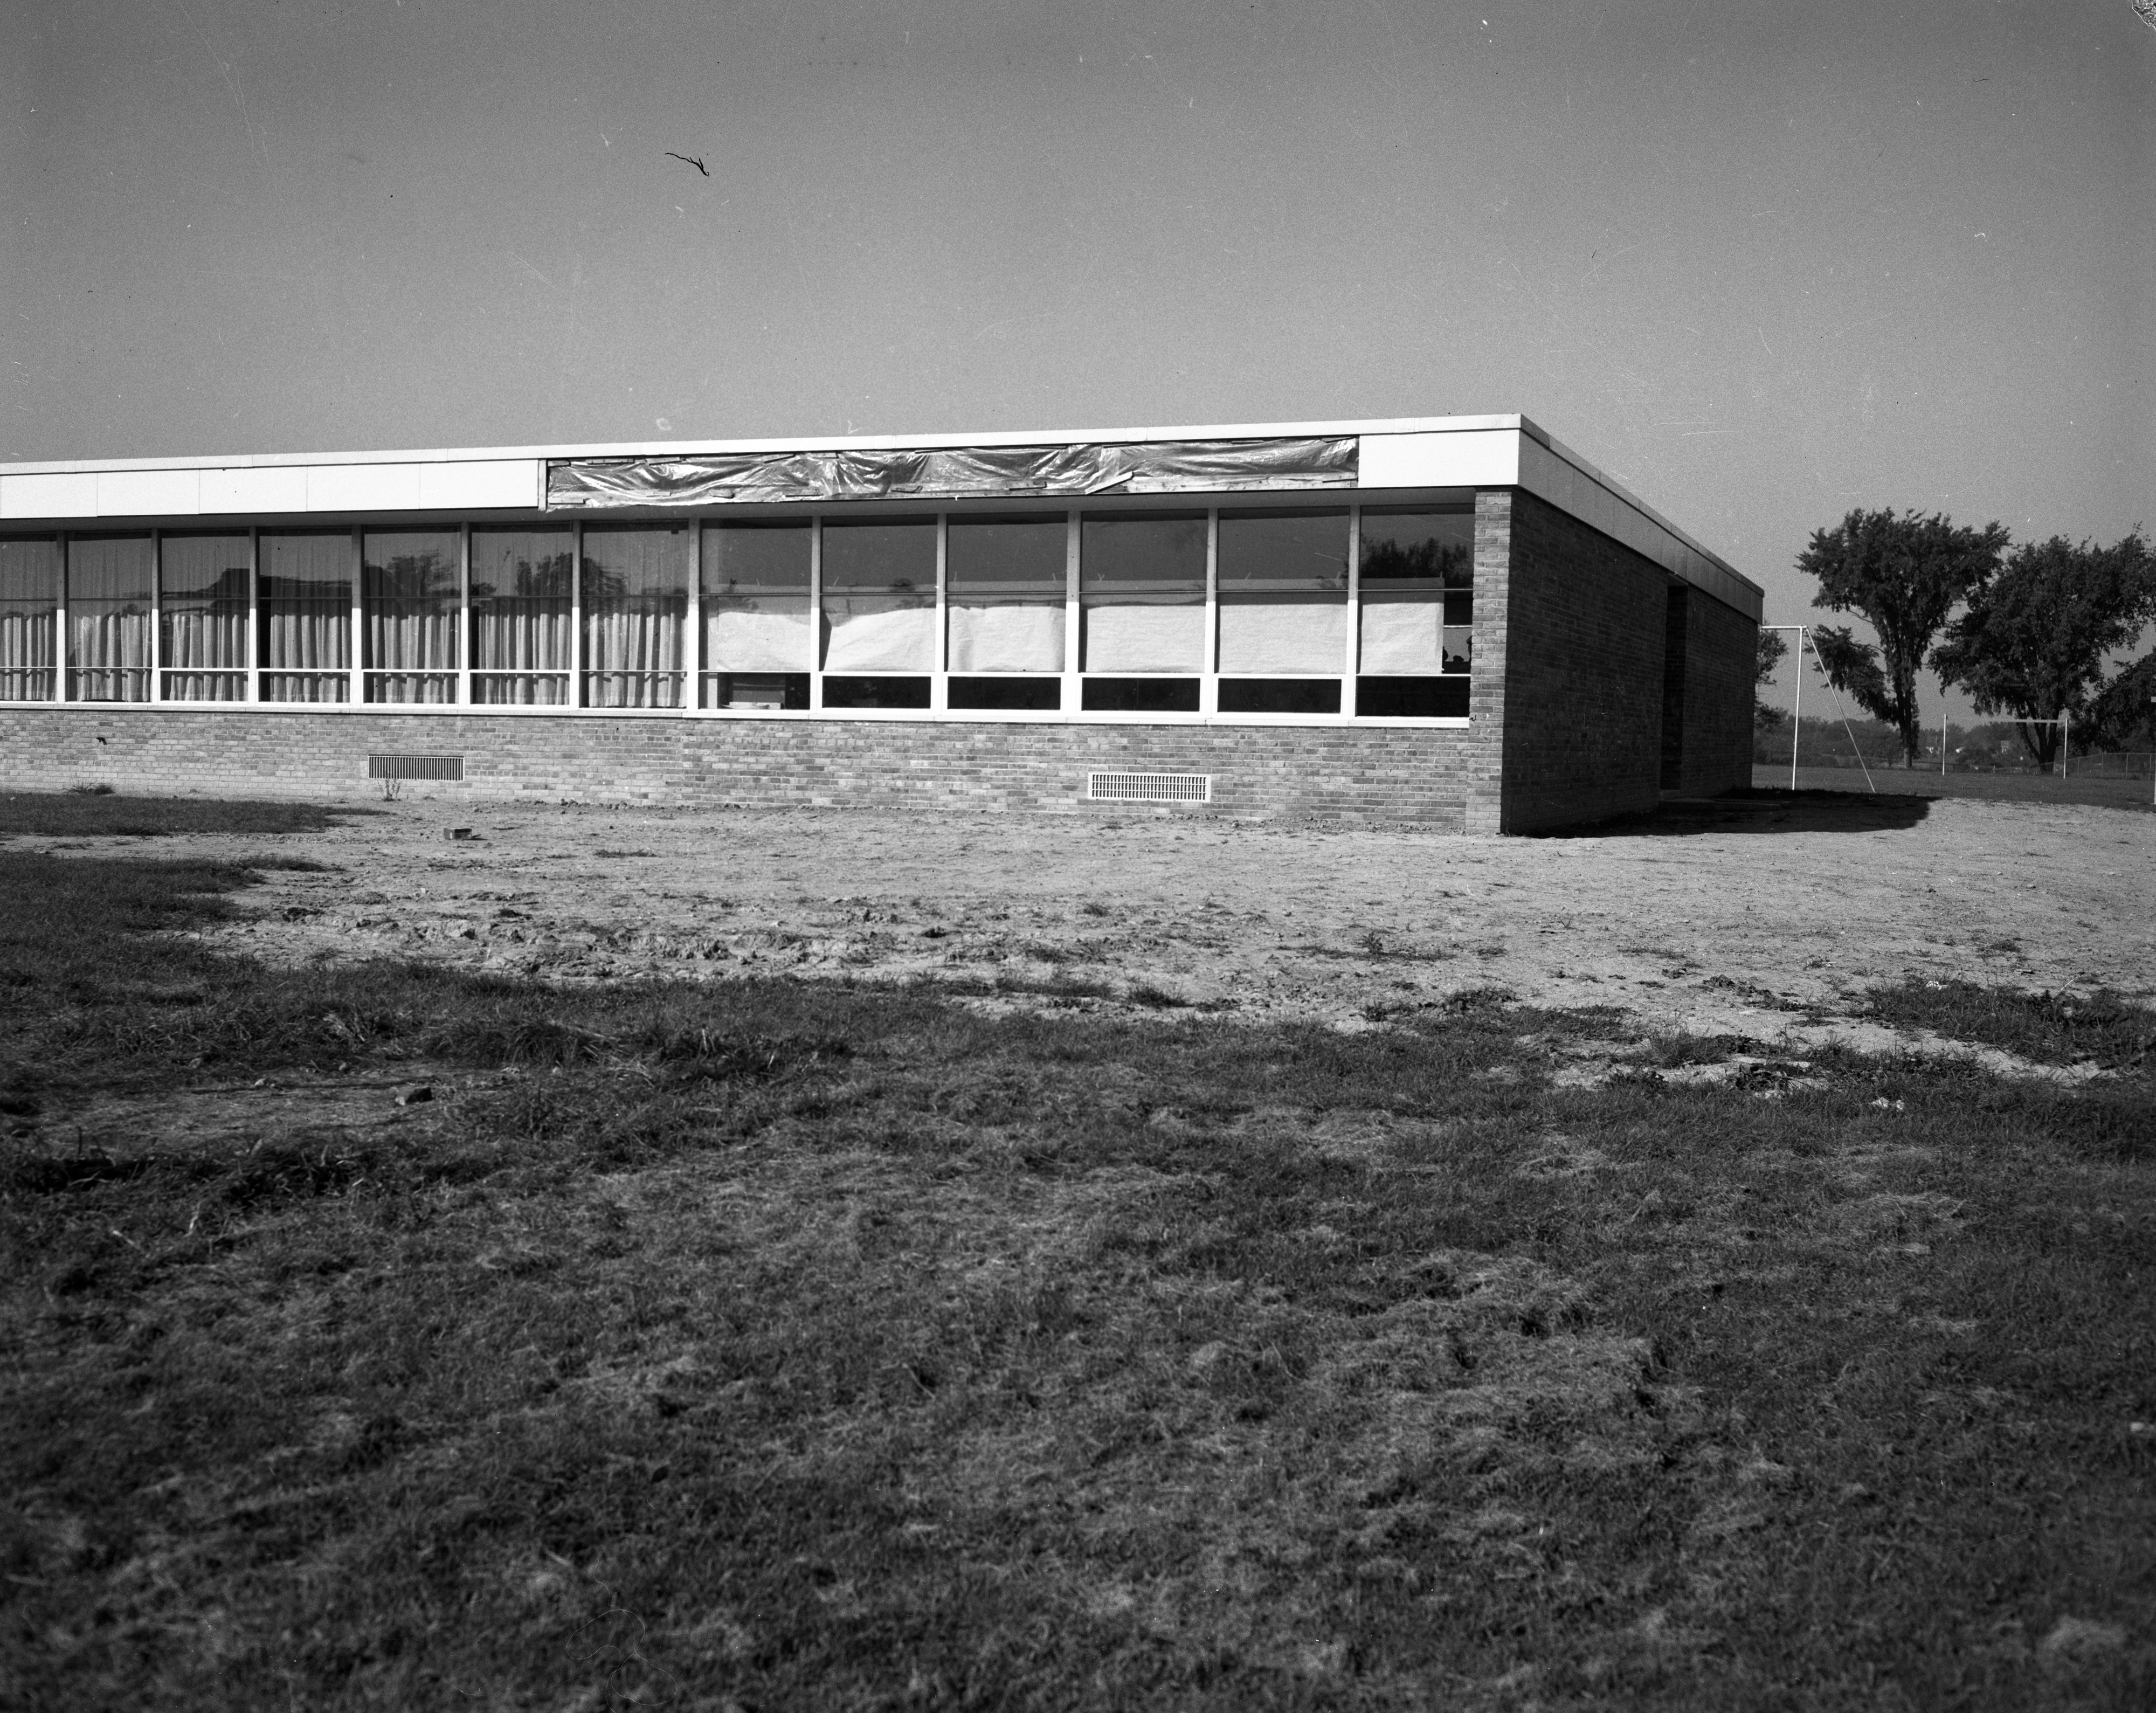 Wines Elementary School Addition, September 1961 image